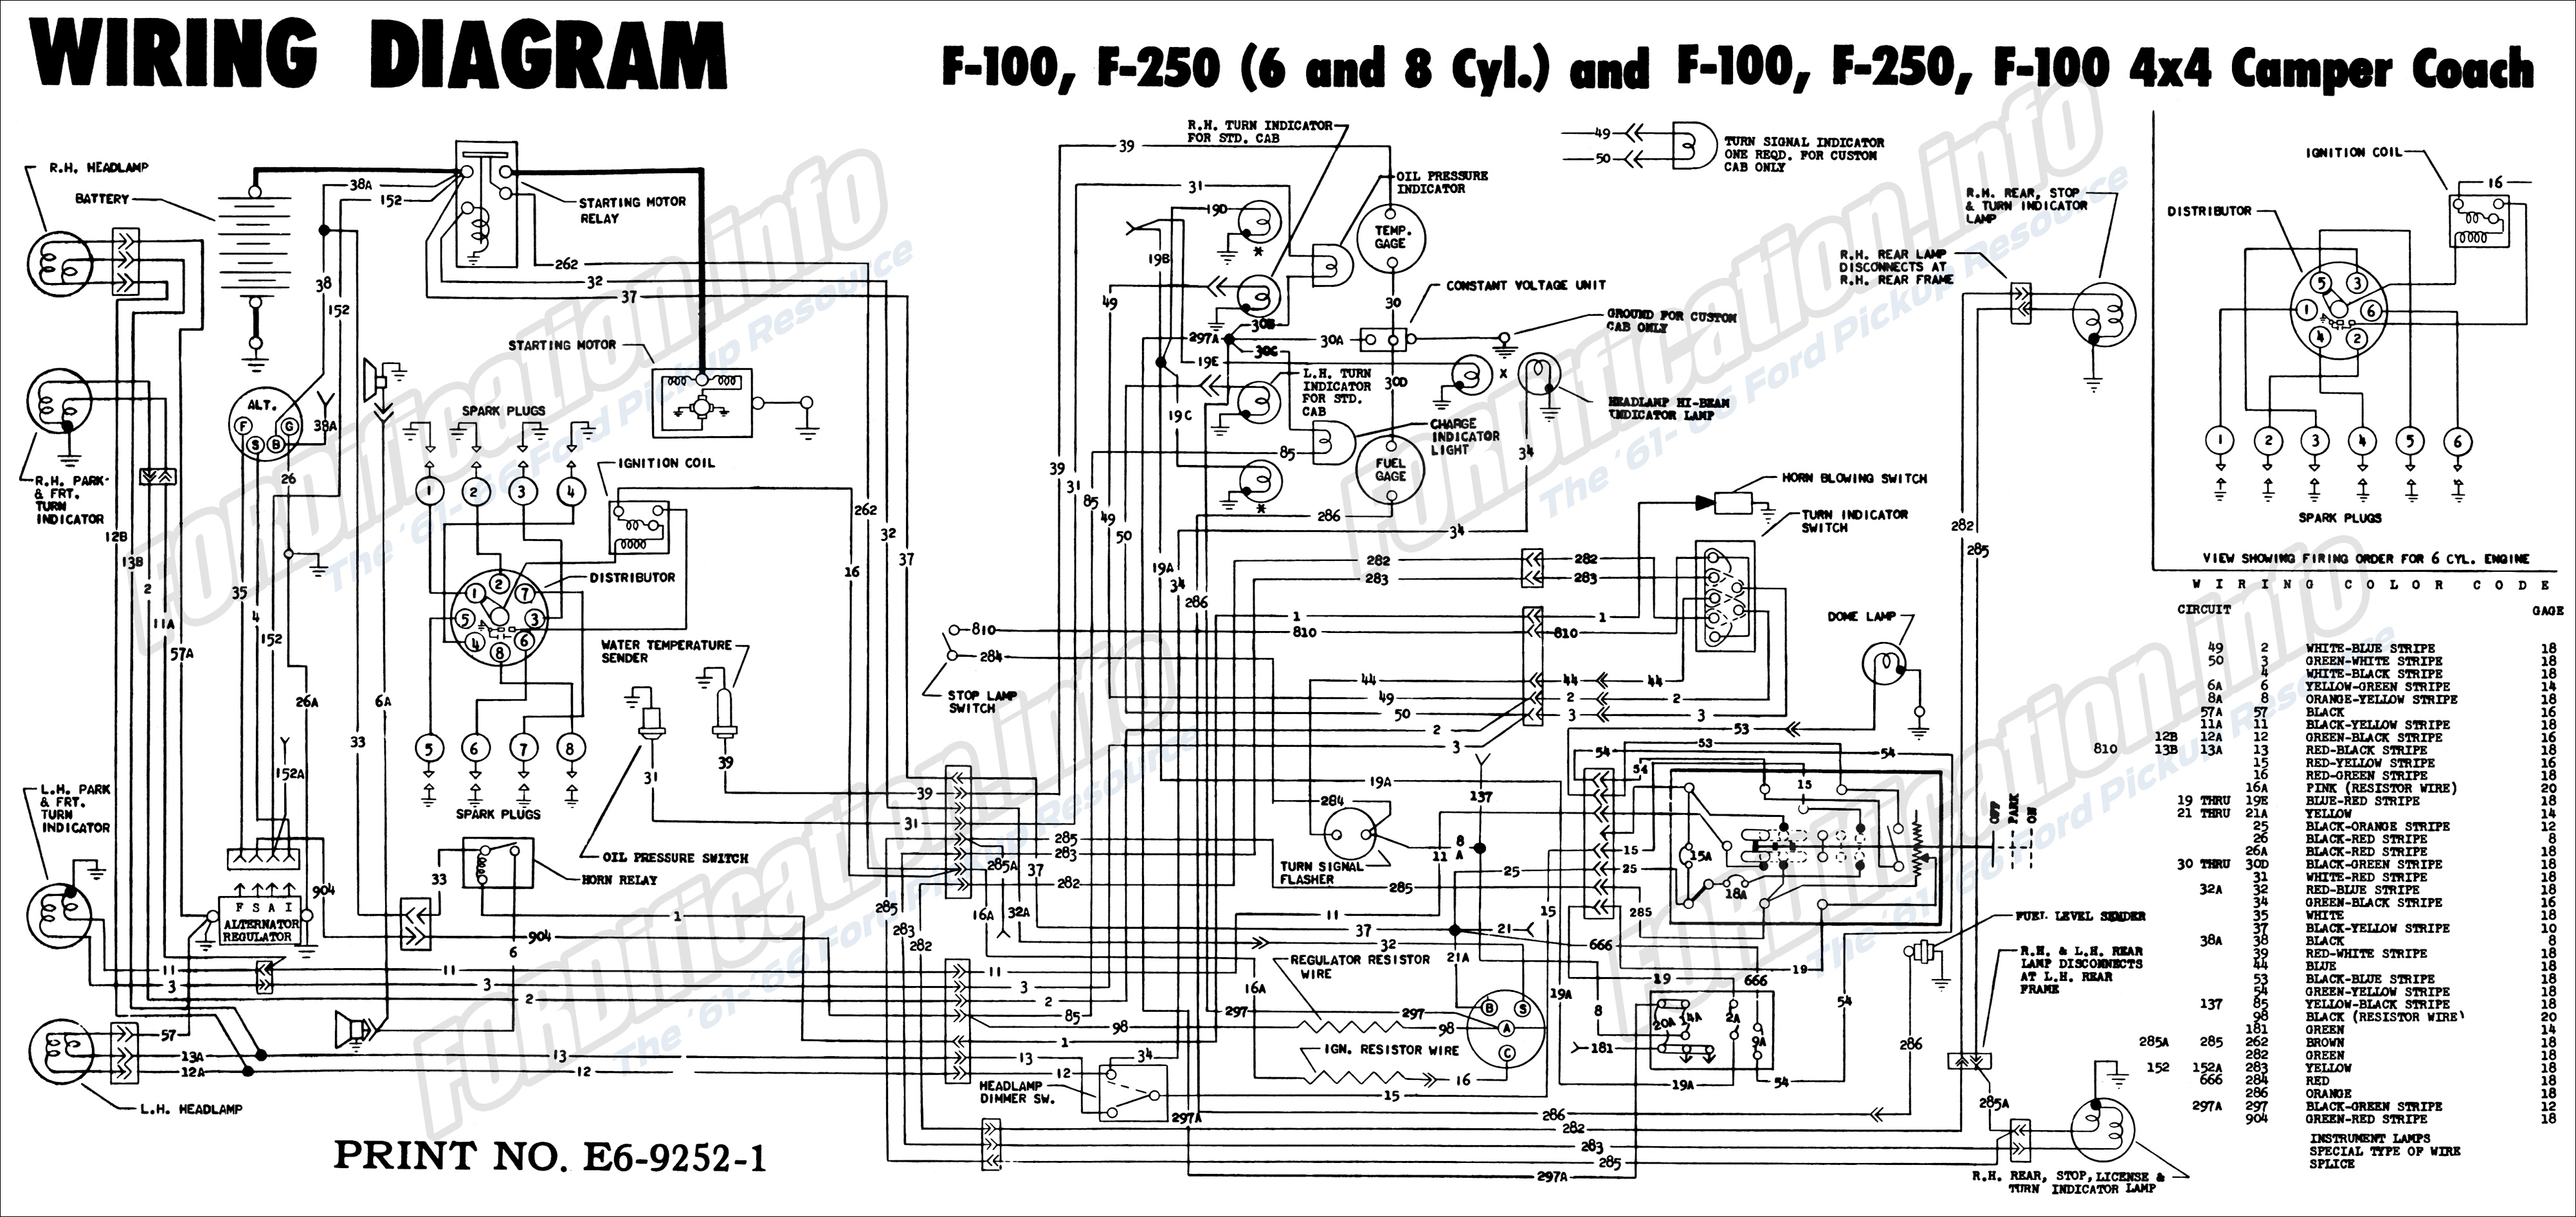 [DIAGRAM_0HG]  1966 Ford Truck Wiring Diagrams - FORDification.info - The '61-'66 Ford  Pickup Resource | 1966 Ford Truck Wiring Diagram |  | FORDification.info